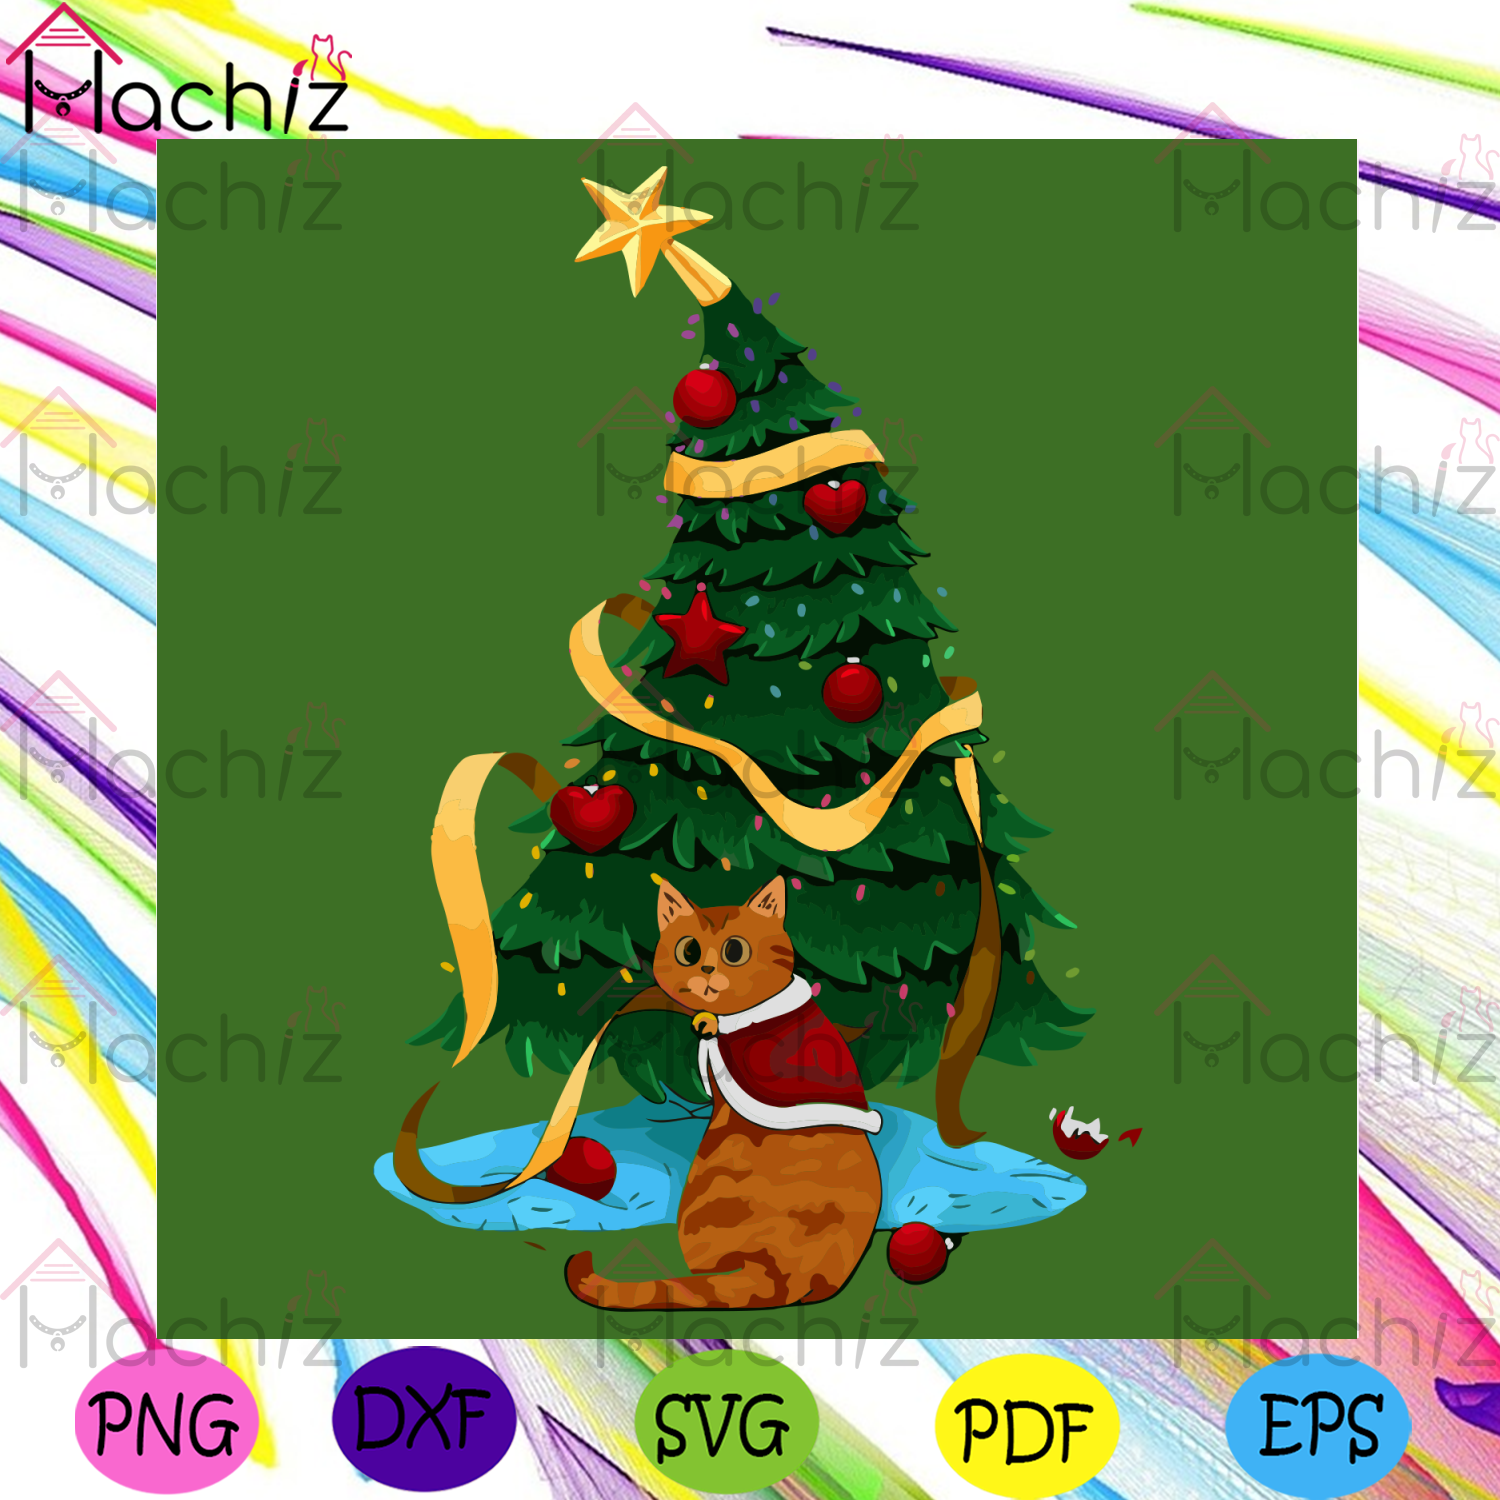 Christmas Kitty Svg, Christmas Svg, Christmas Tree Svg, Kitty Svg, Christmas Cat Svg, Bauble Svg, Christmas Star Svg, Christmas Gifts Svg, Christmas Holiday Svg, Kitty Lovers Svg, Kitty Gifts Svg, Xmas Svg, Noel Svg, Jingle Bell Svg